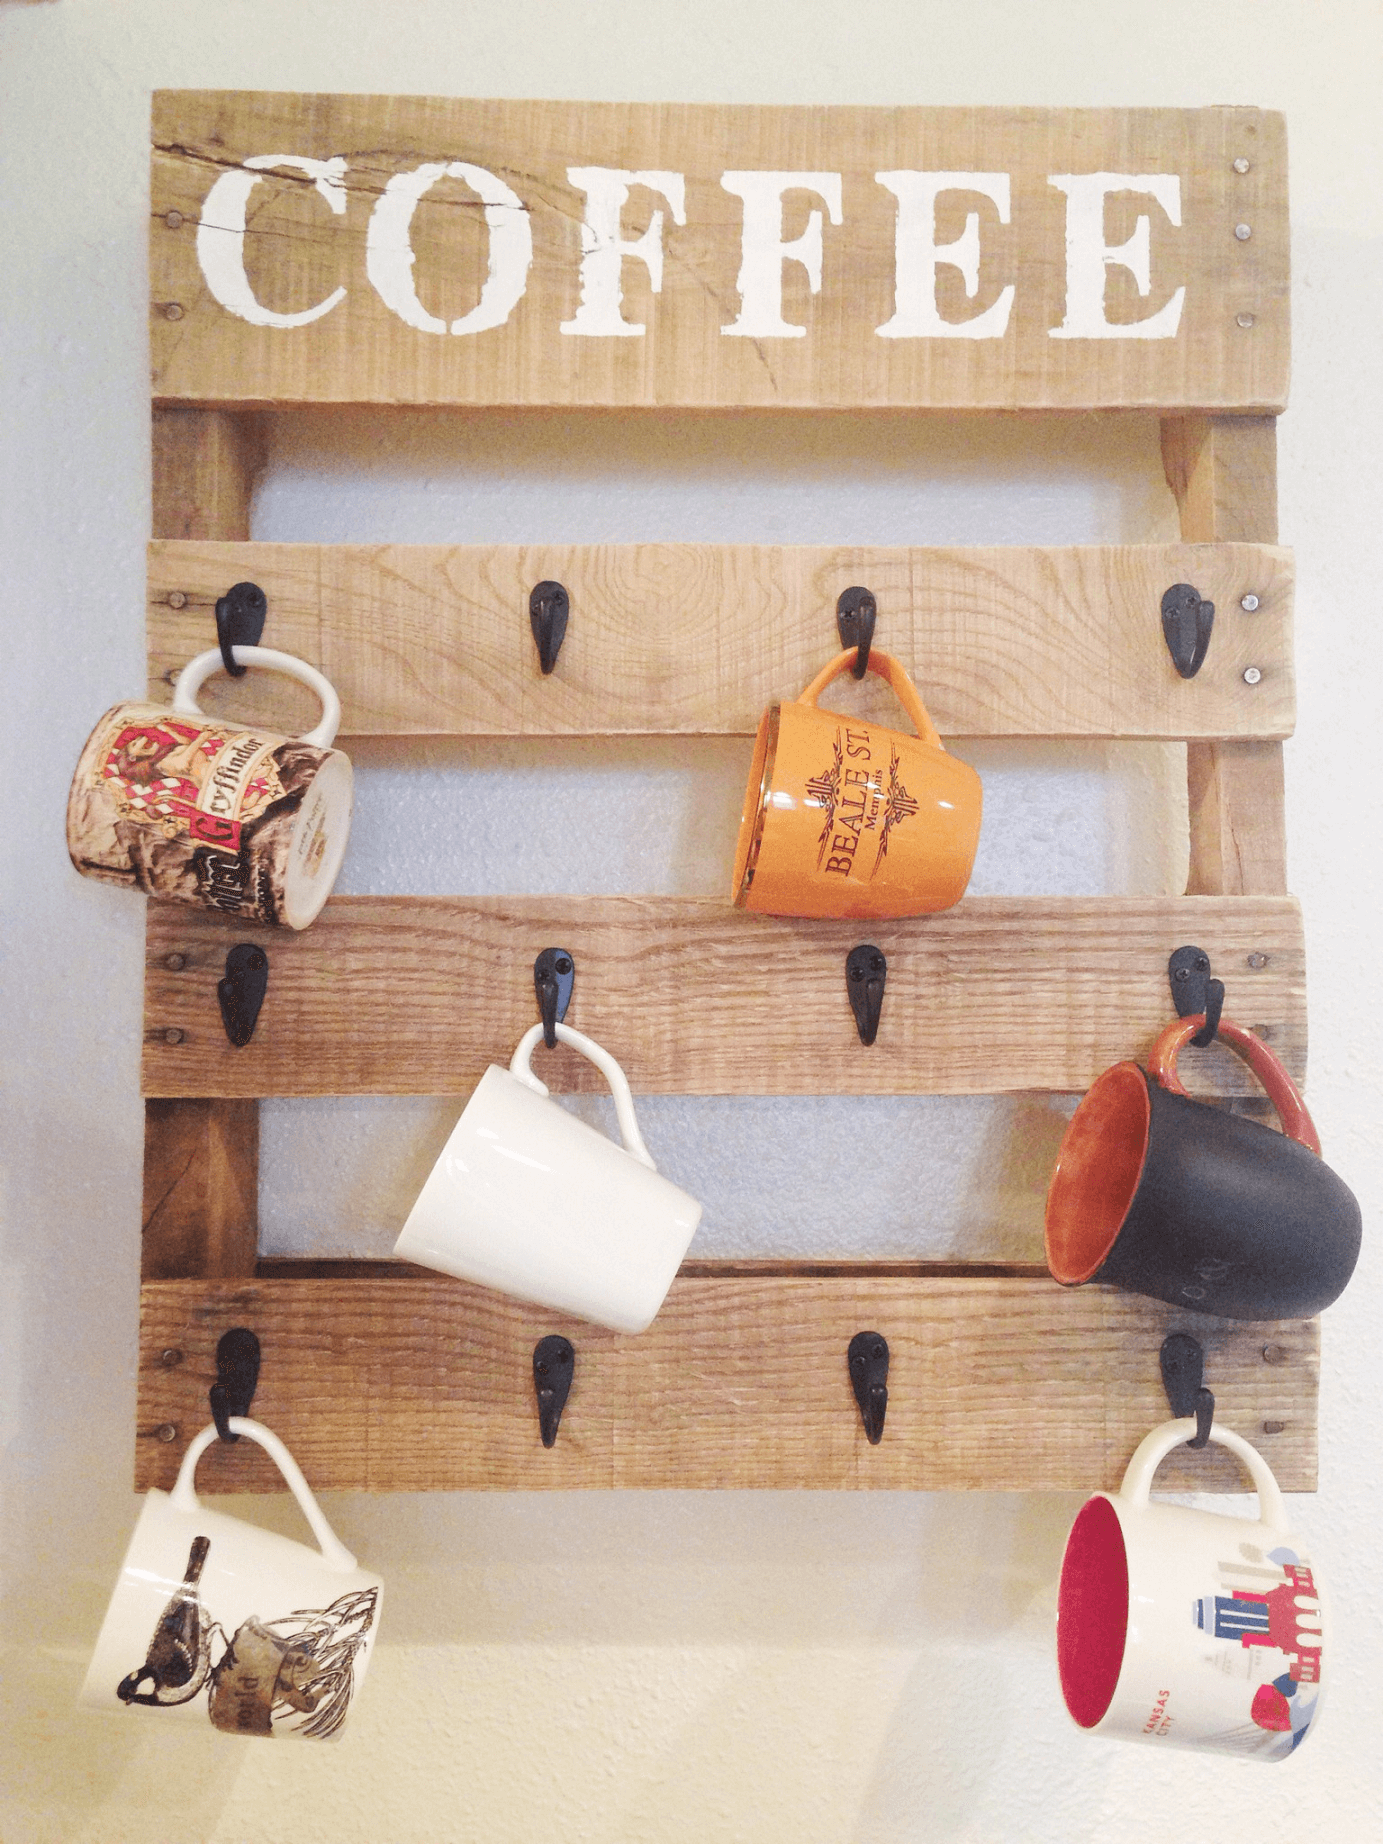 Wood recycled Coffee Cup Holder for wall decor